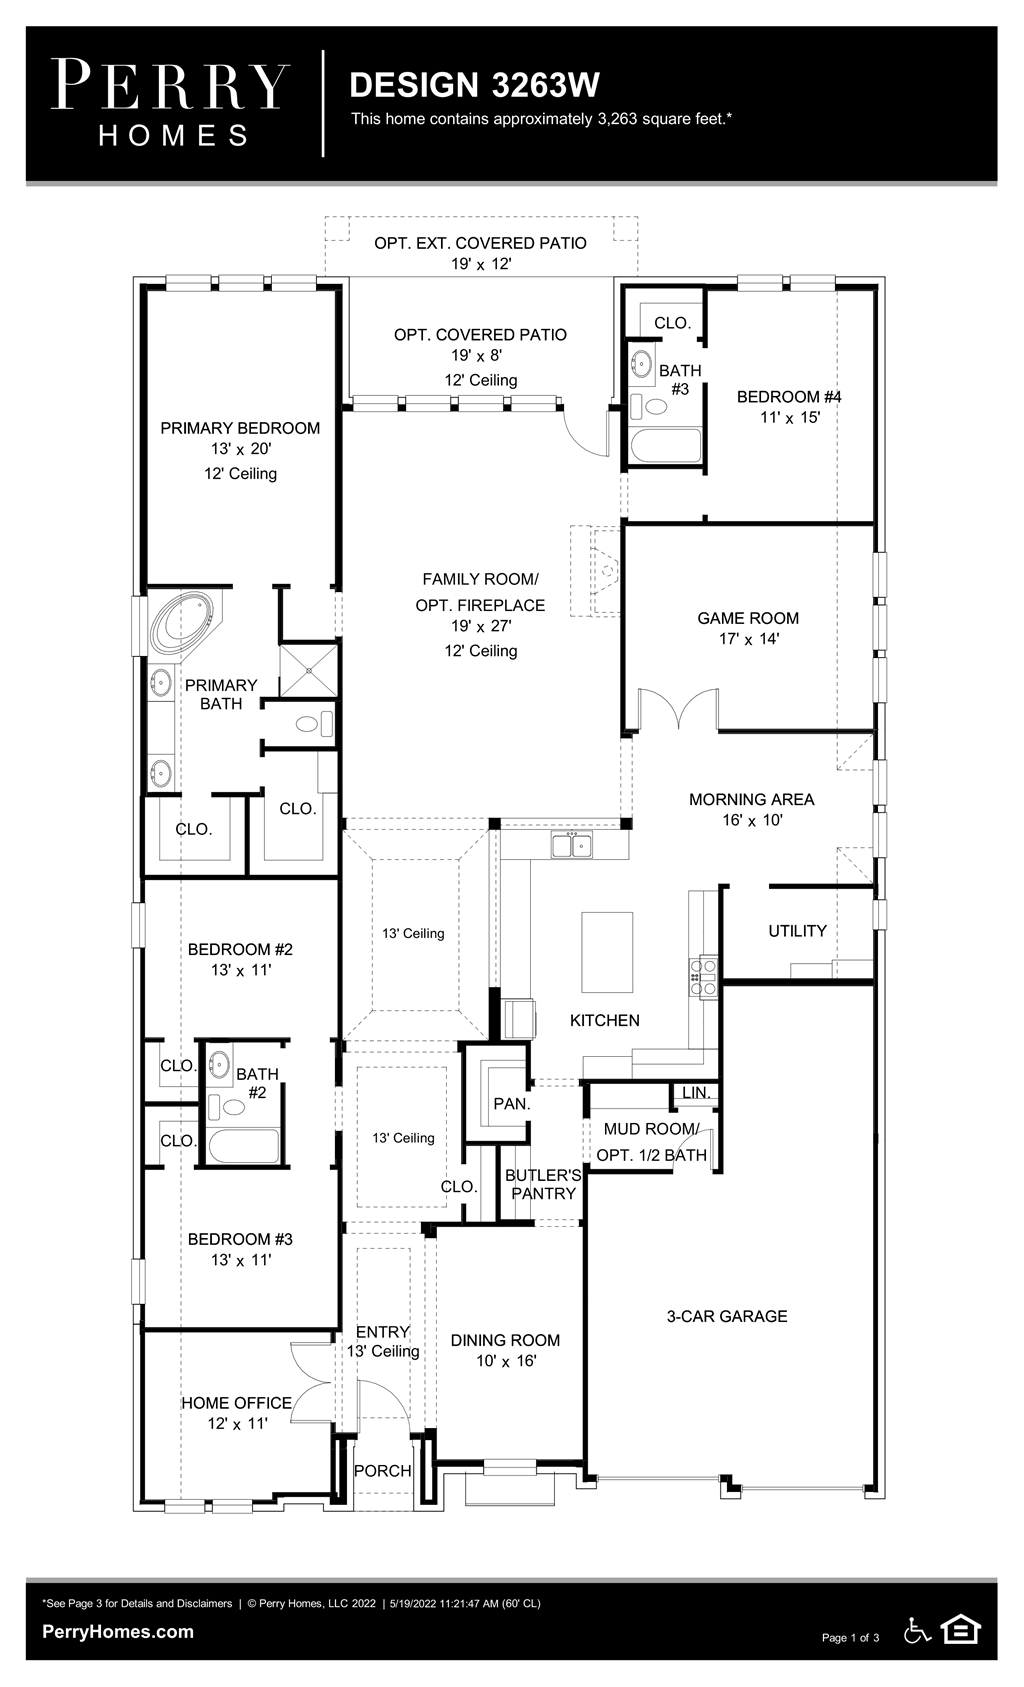 Floor Plan for 3263W